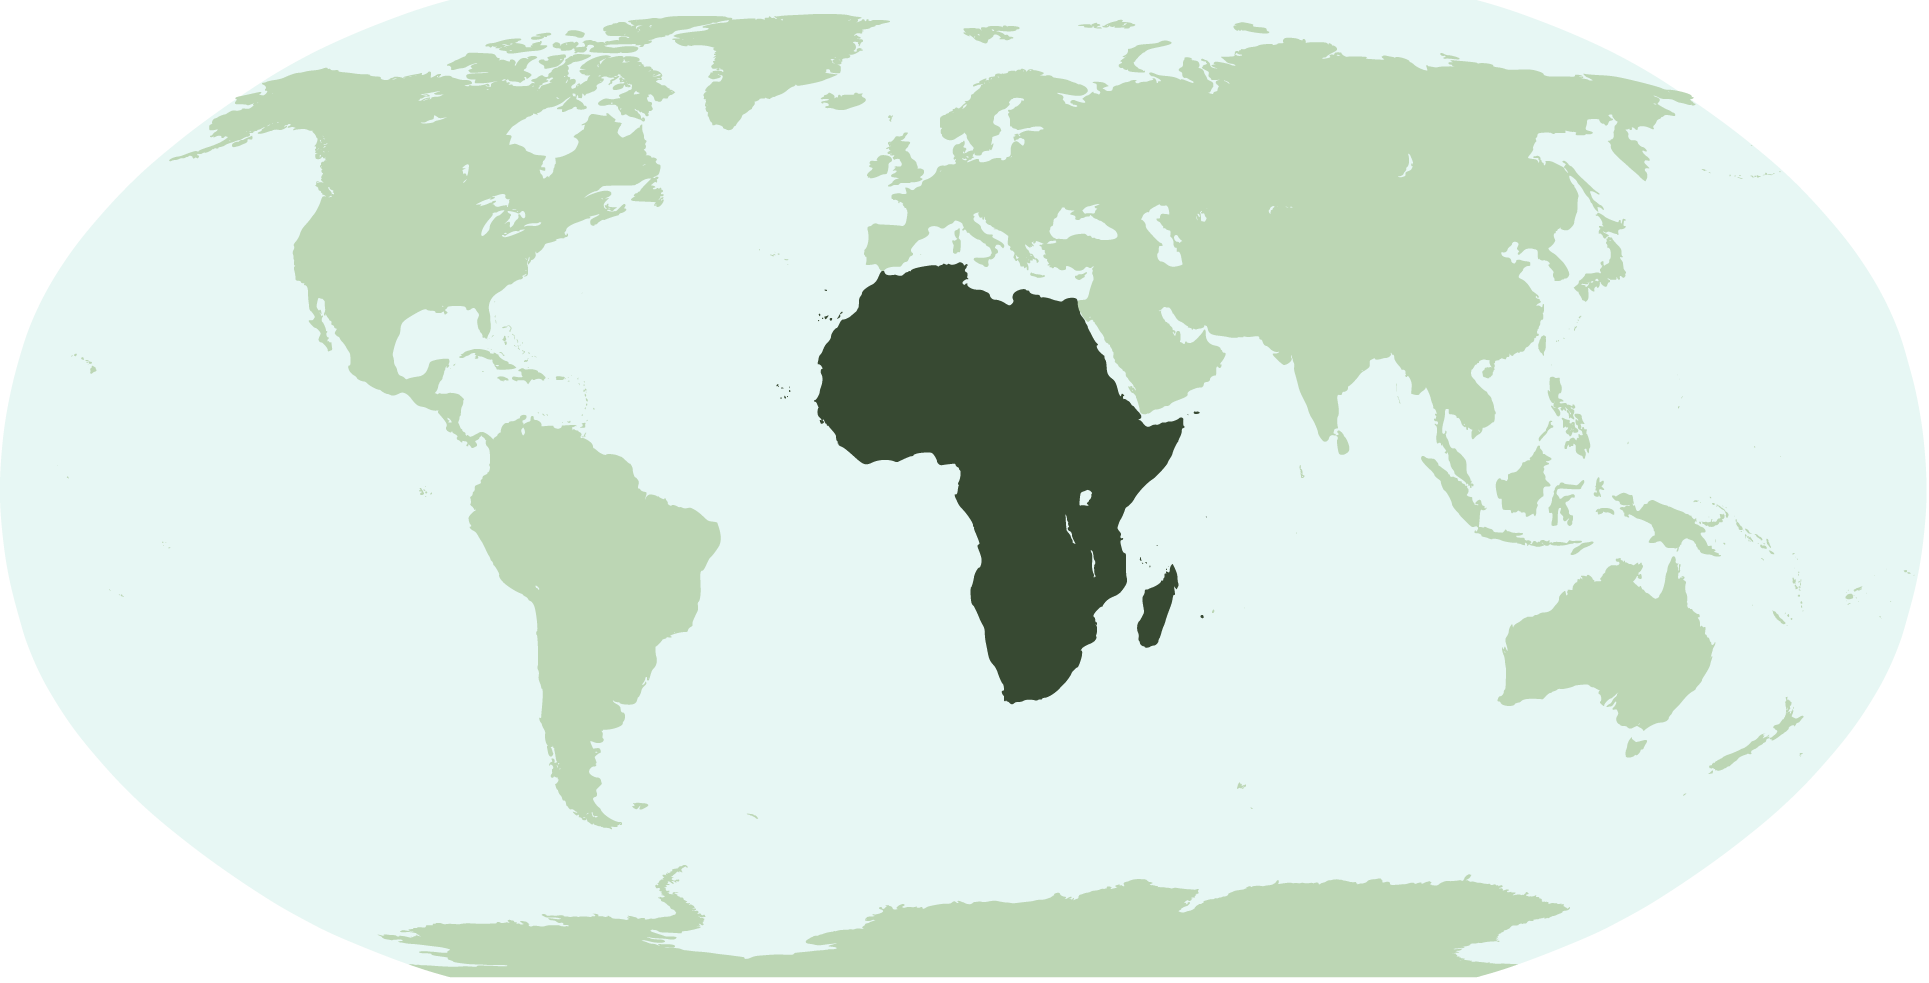 AfricaLocation.png